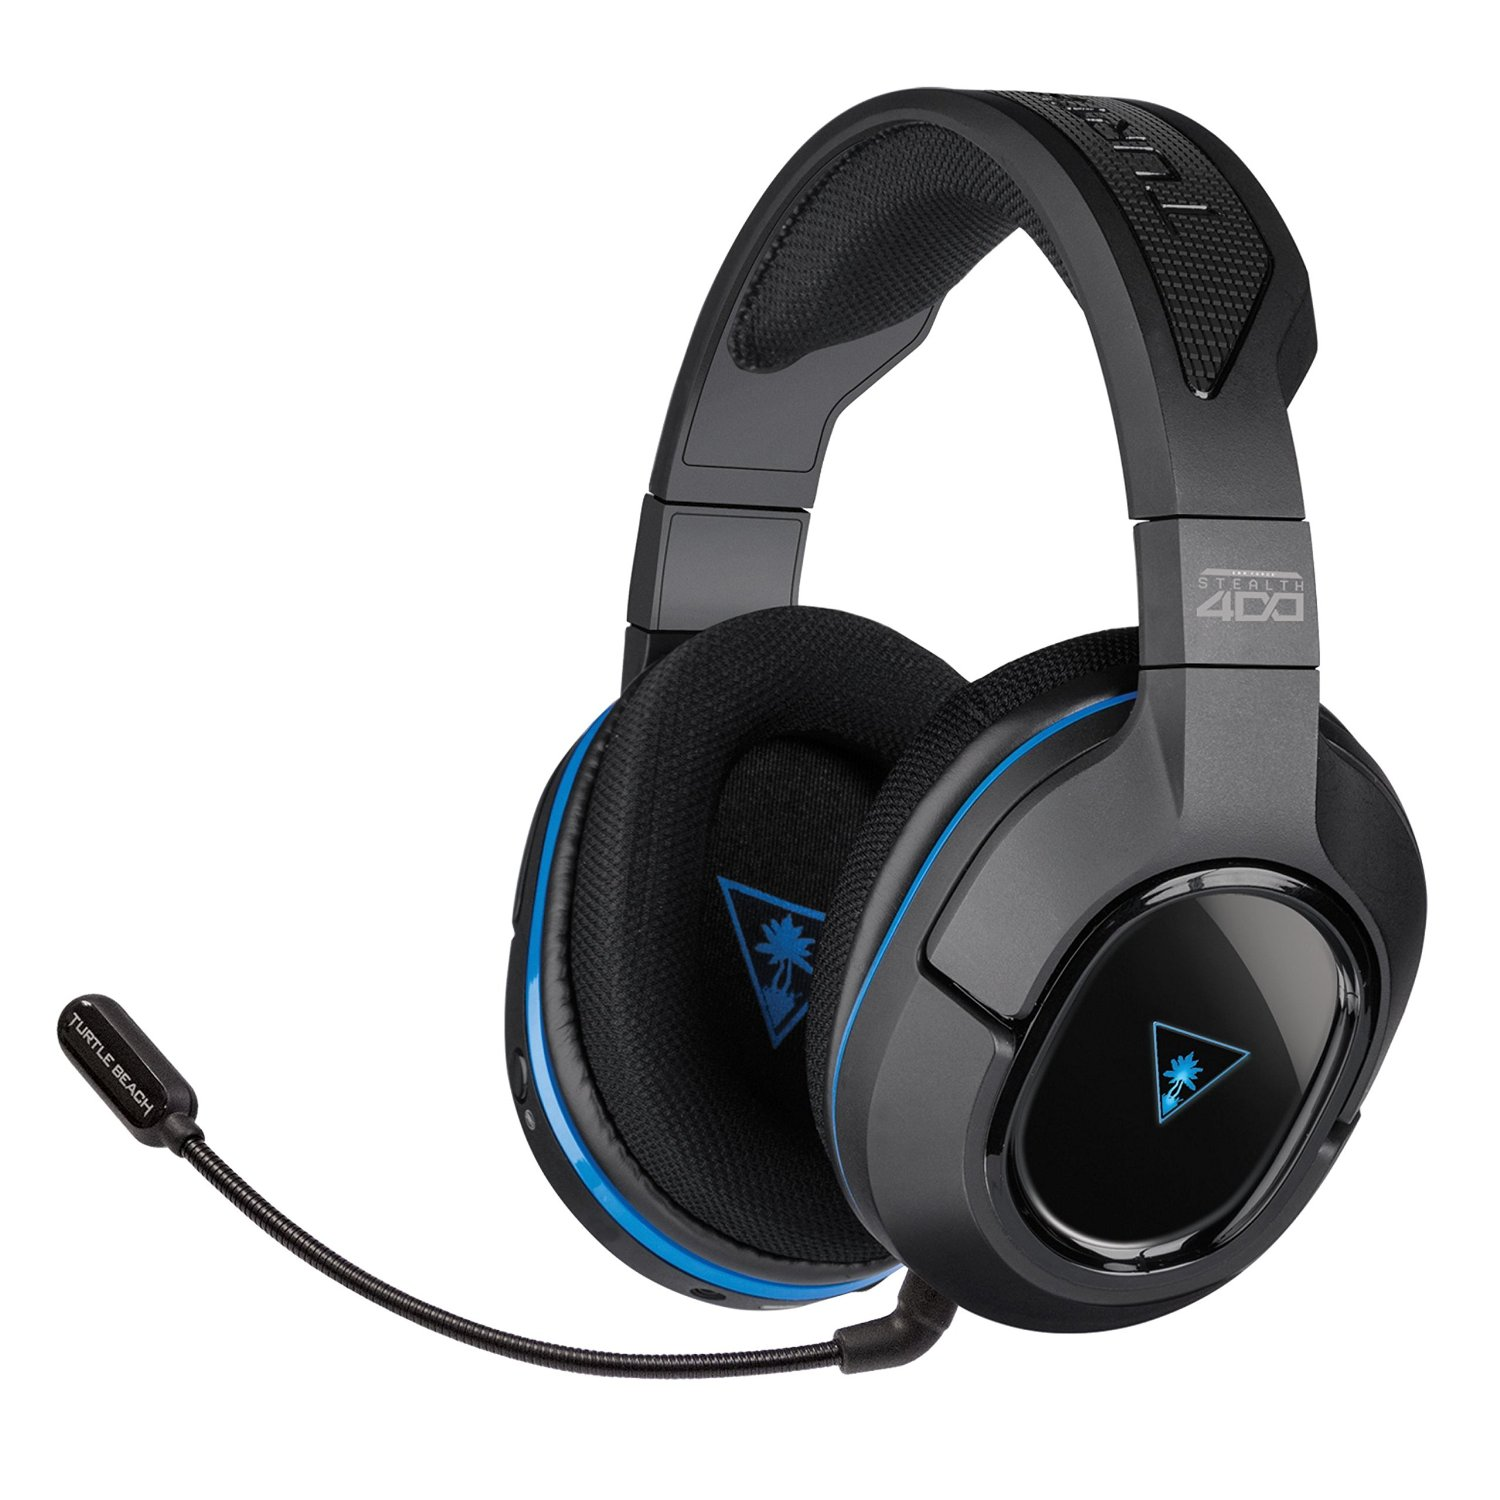 Turtle Beach – Ear Force Stealth Gaming Headset